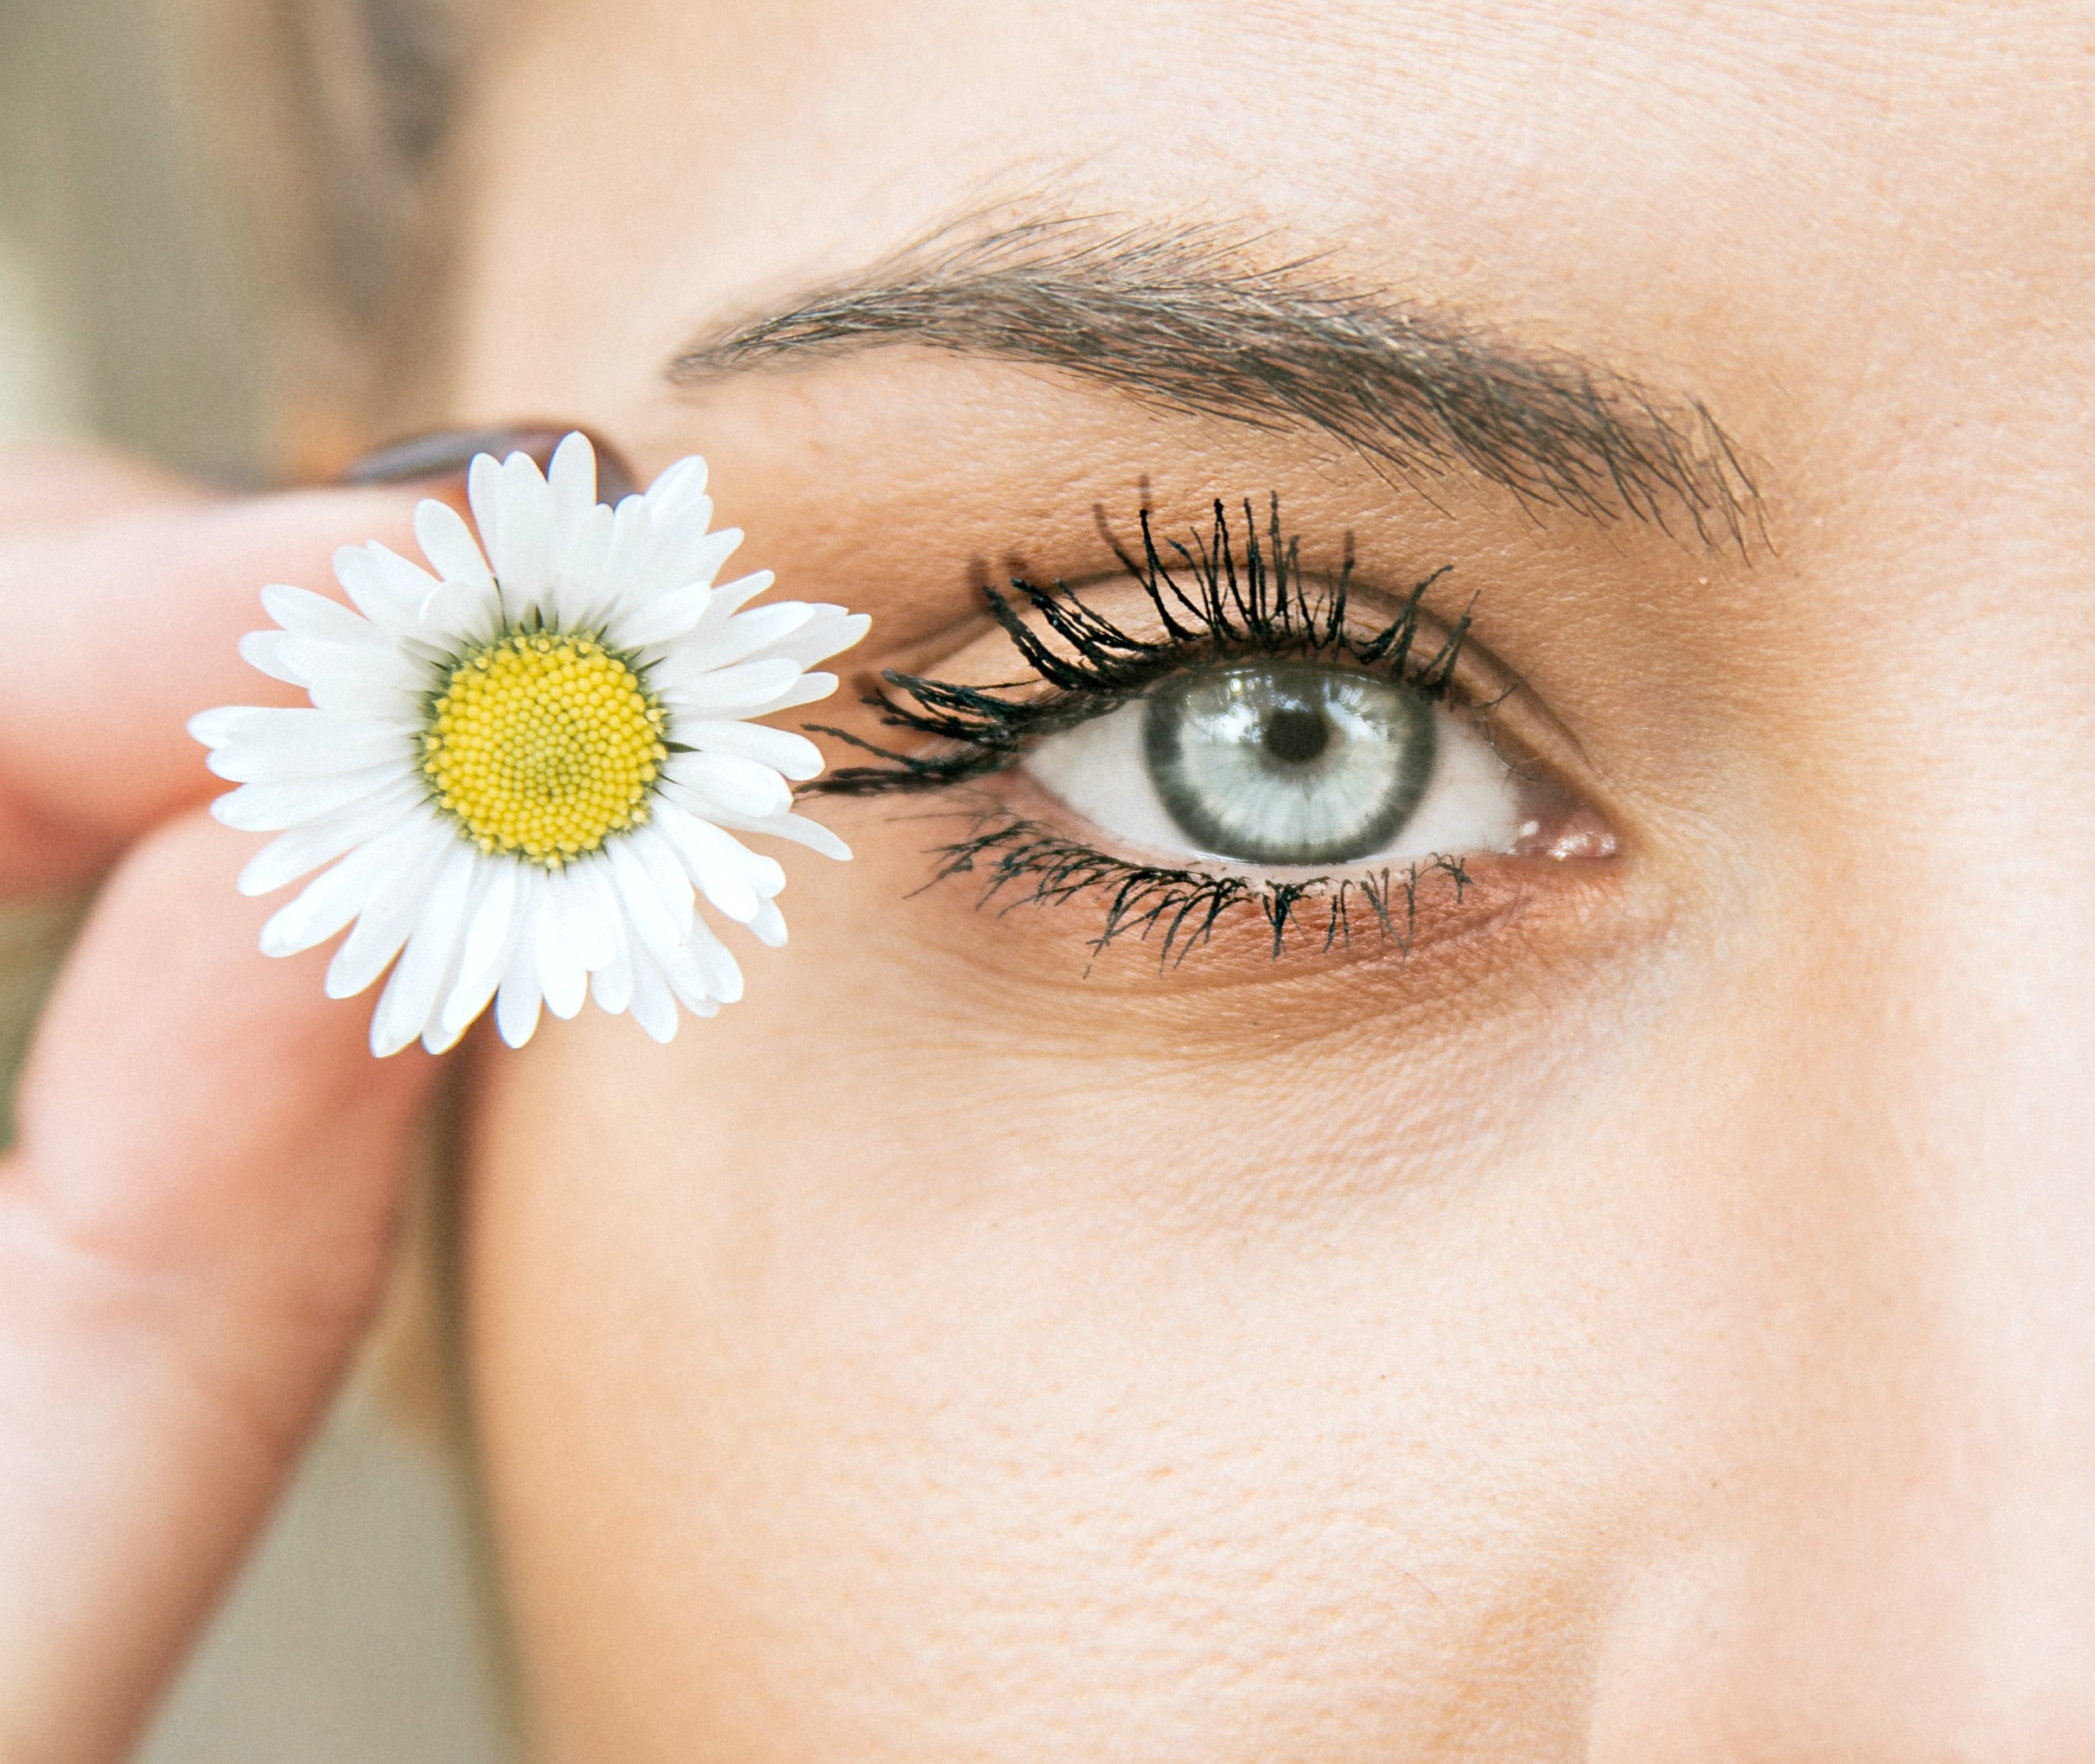 Tips for Long Eyelashes - How to Get Longer Lashes Naturally